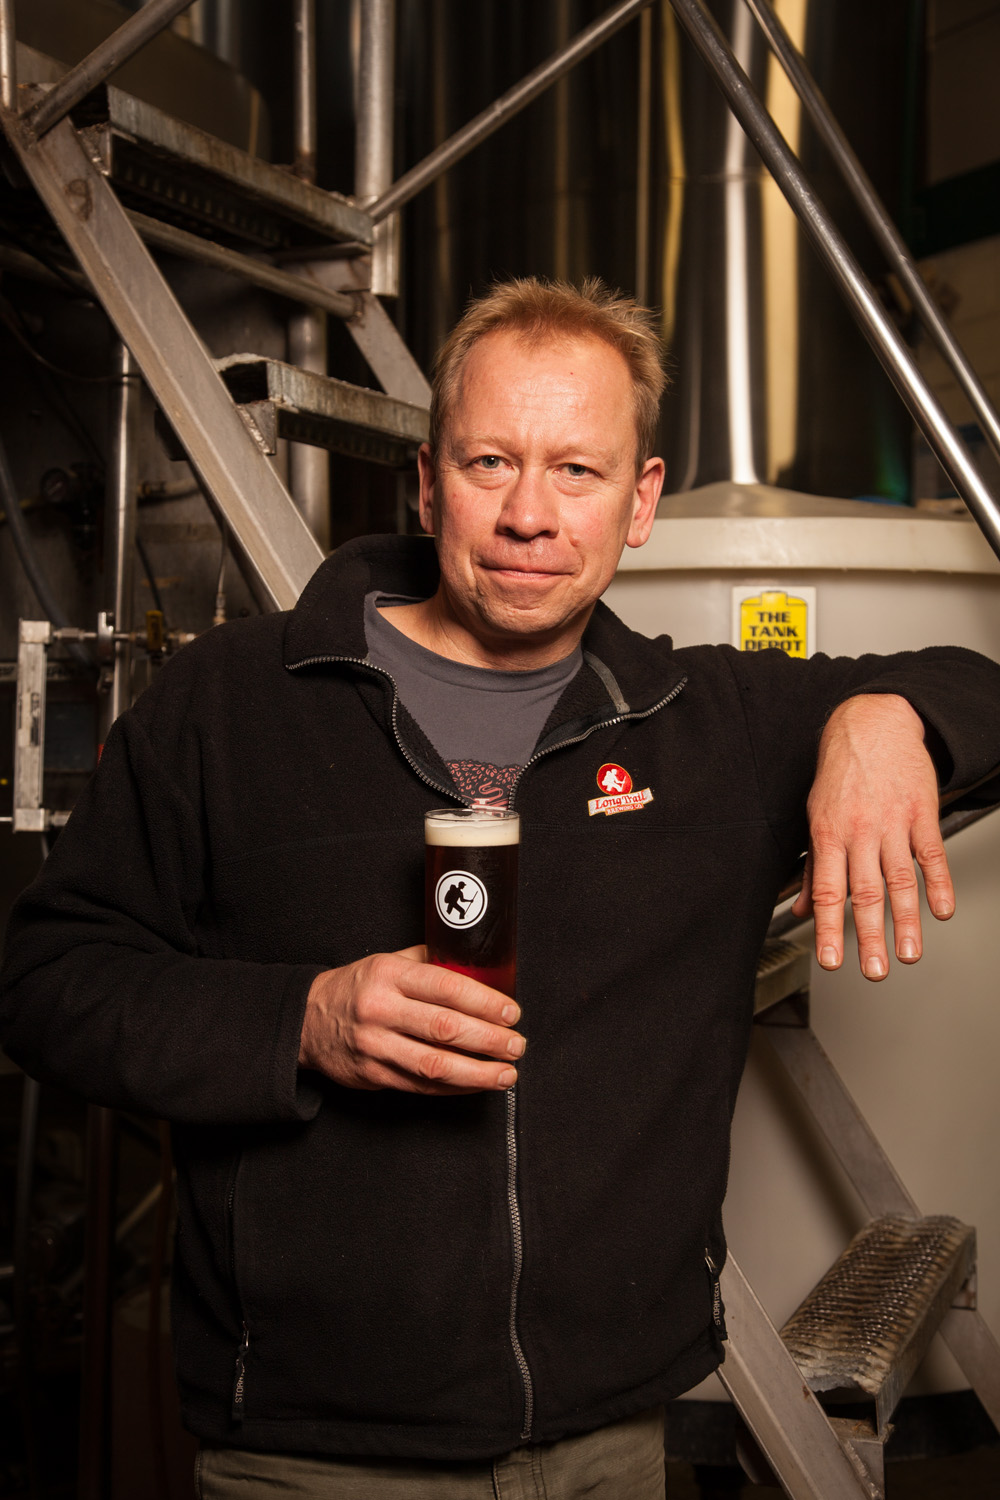 Dave Hartman, Brewmaster at Long Trail Brewing Co. Bridgewater Crossing, VT Established in 1989